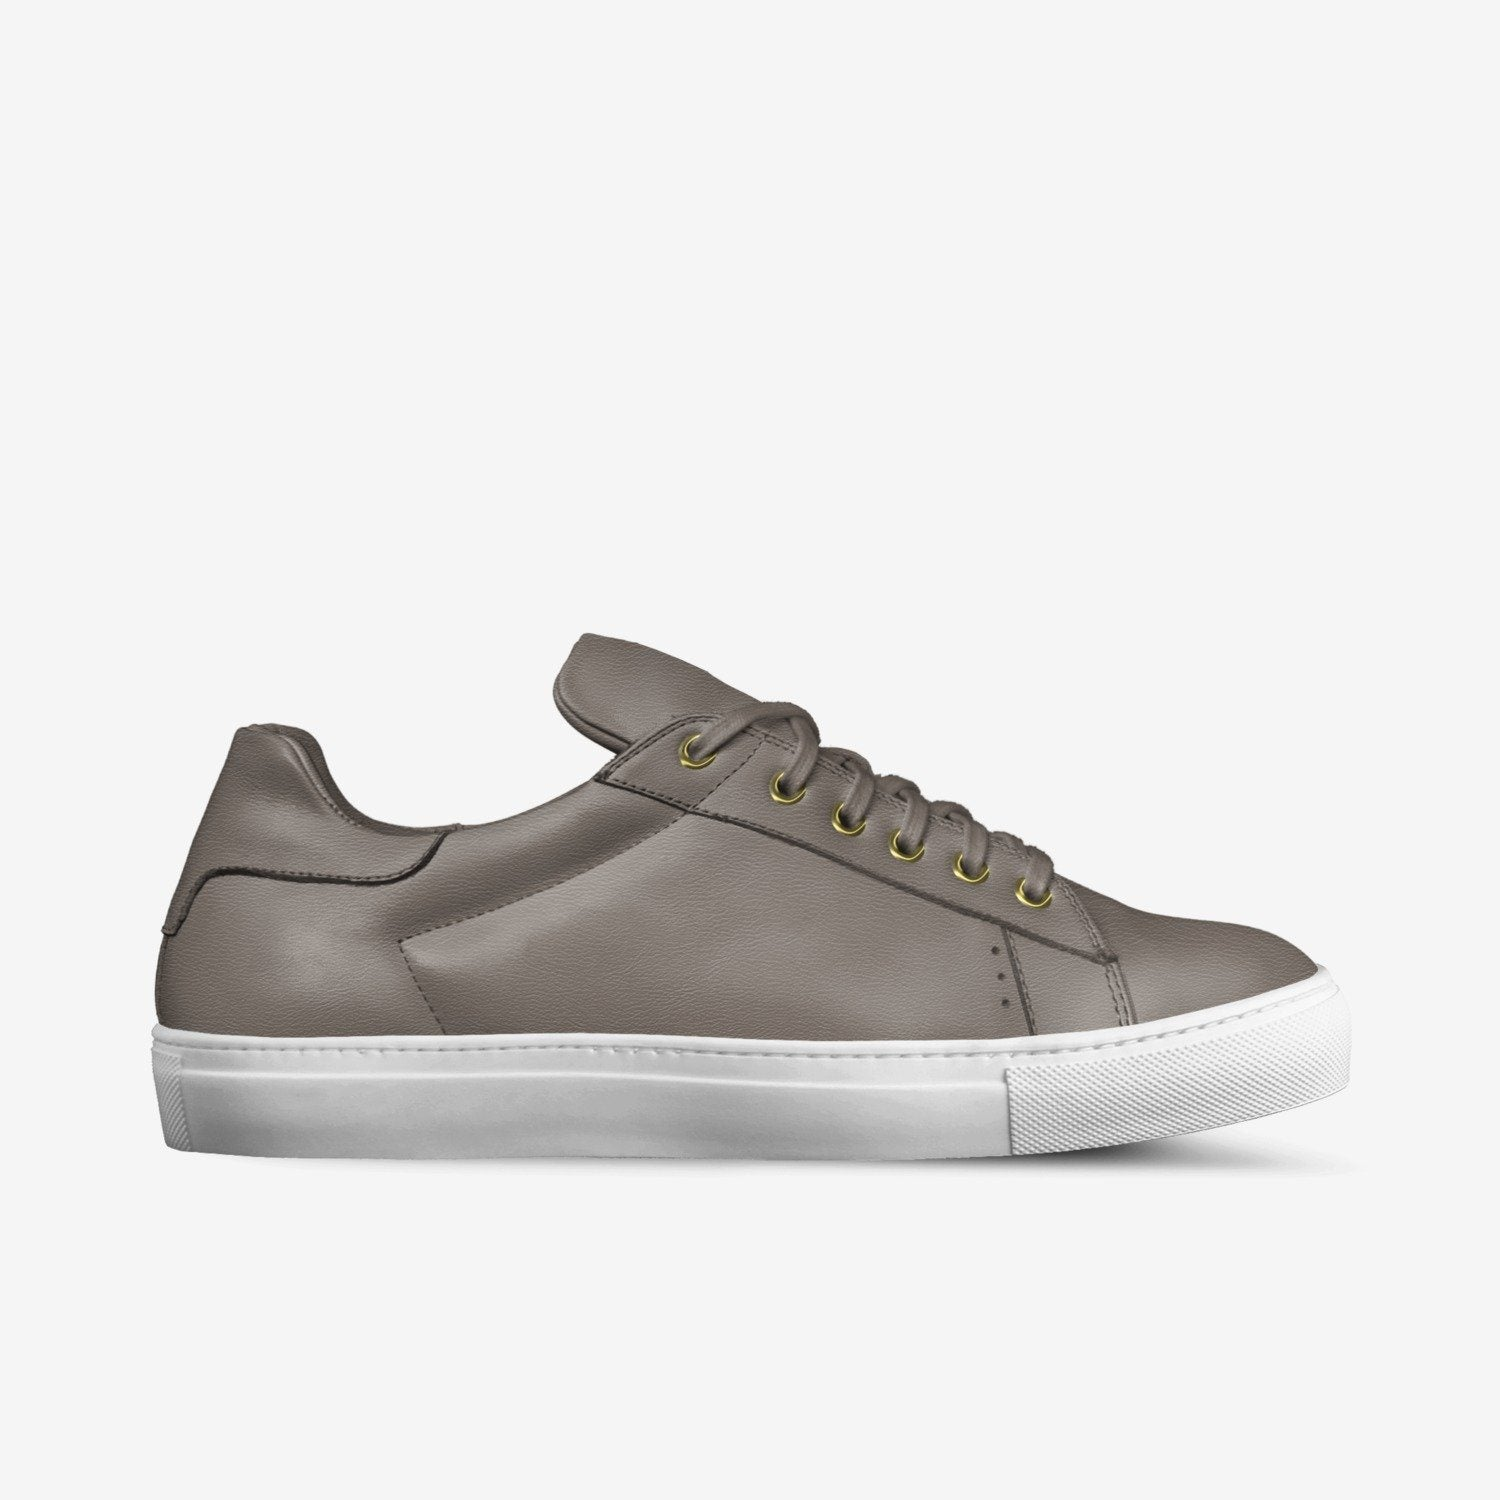 LORENZO LEATHER SNEAKERS IN CLAY | Poor Little Rich Boy Clothing